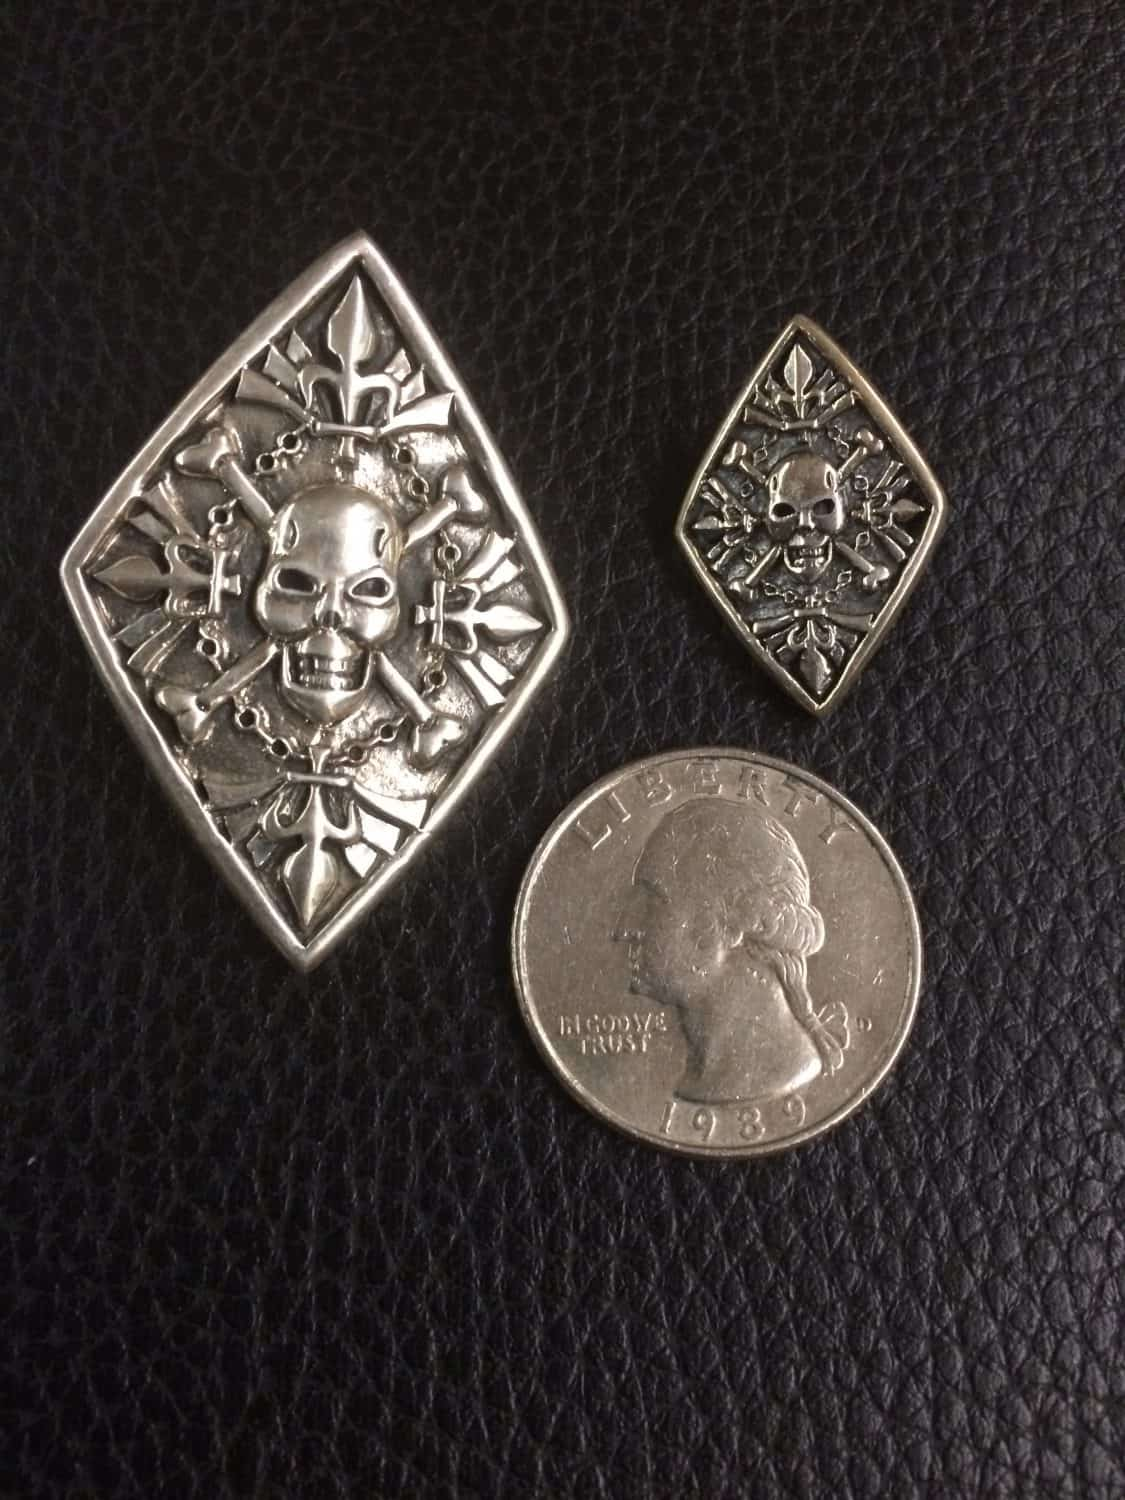 Celtic Jackalope's 925 Sterling Silver Large and Small Pirate Skull and Bones Scottish Formal Buttons by Maxine Miller